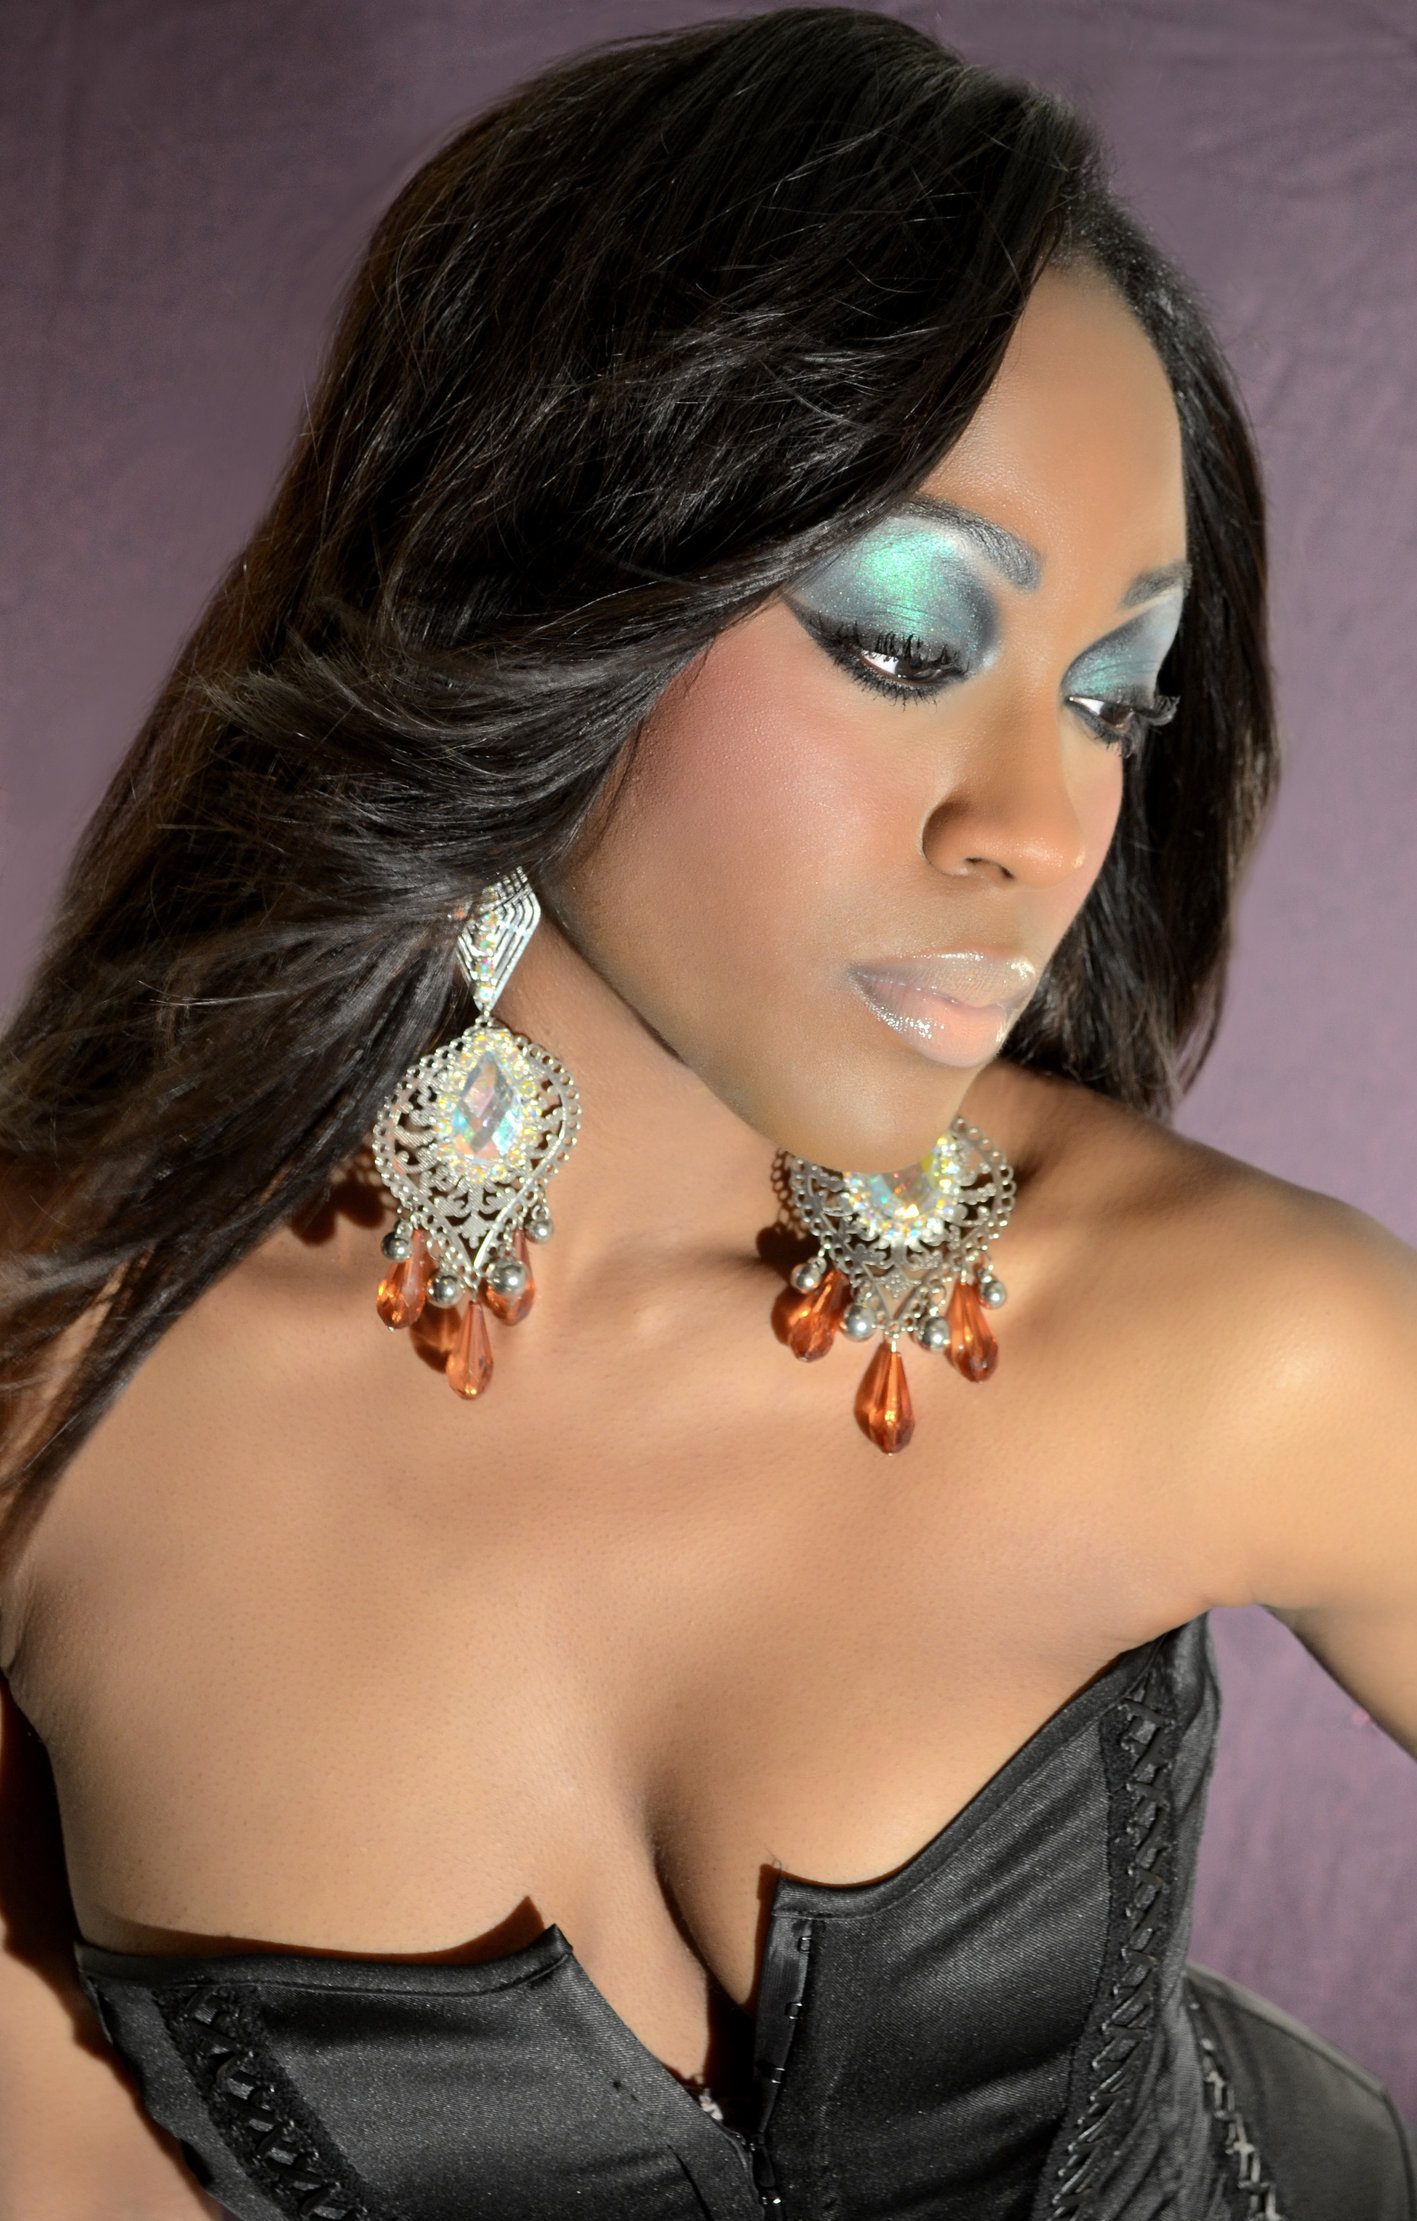 BIANCA CHARDEI was a finalist on AMERICAS NEXT TOP MODEL where she honed her modeling skills.